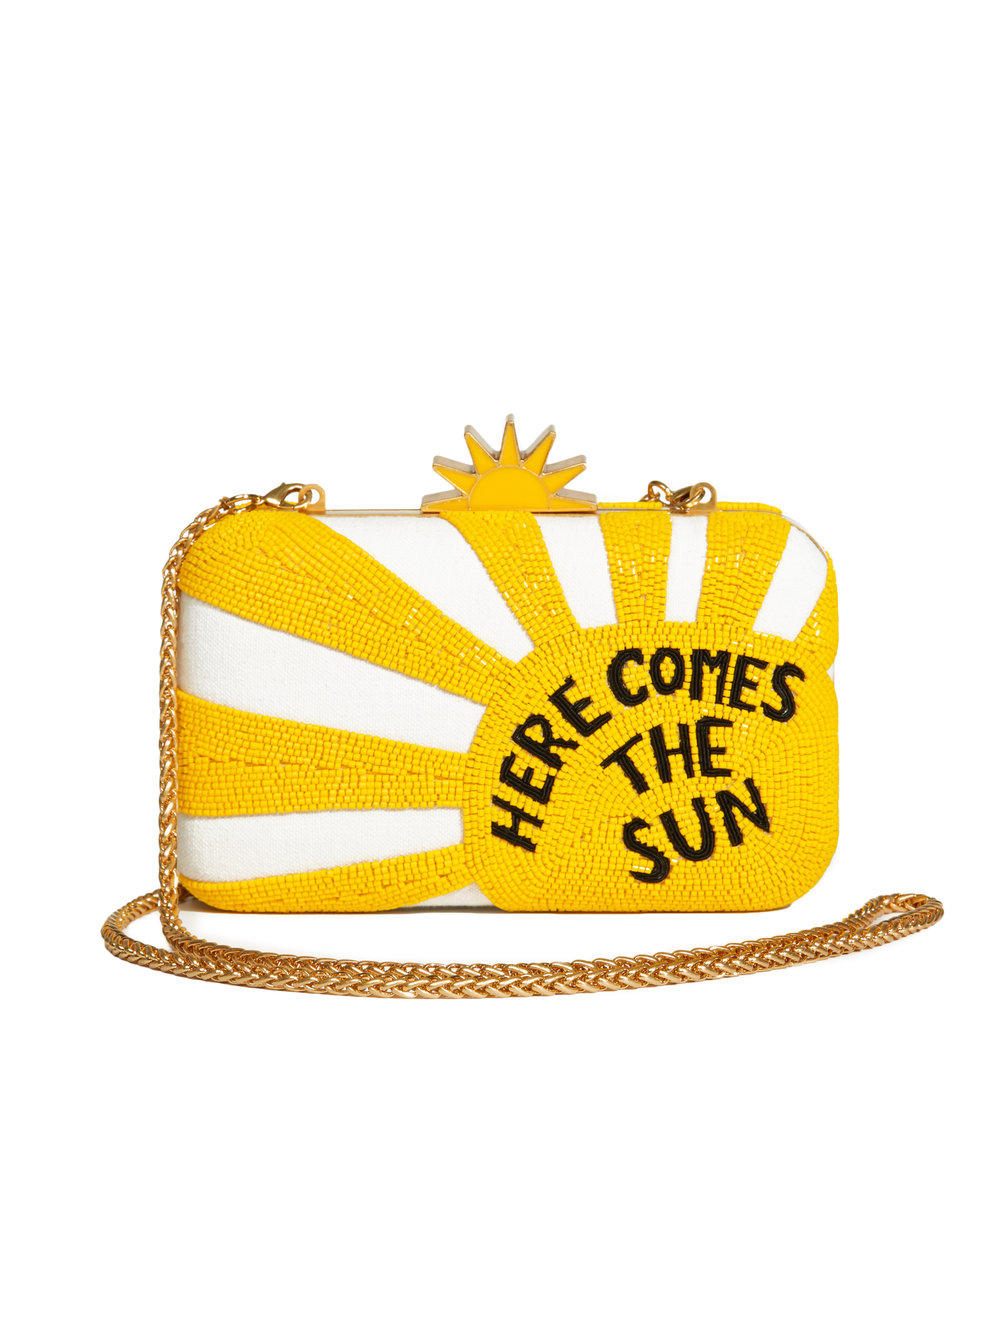 here comes the sun yellow clutch